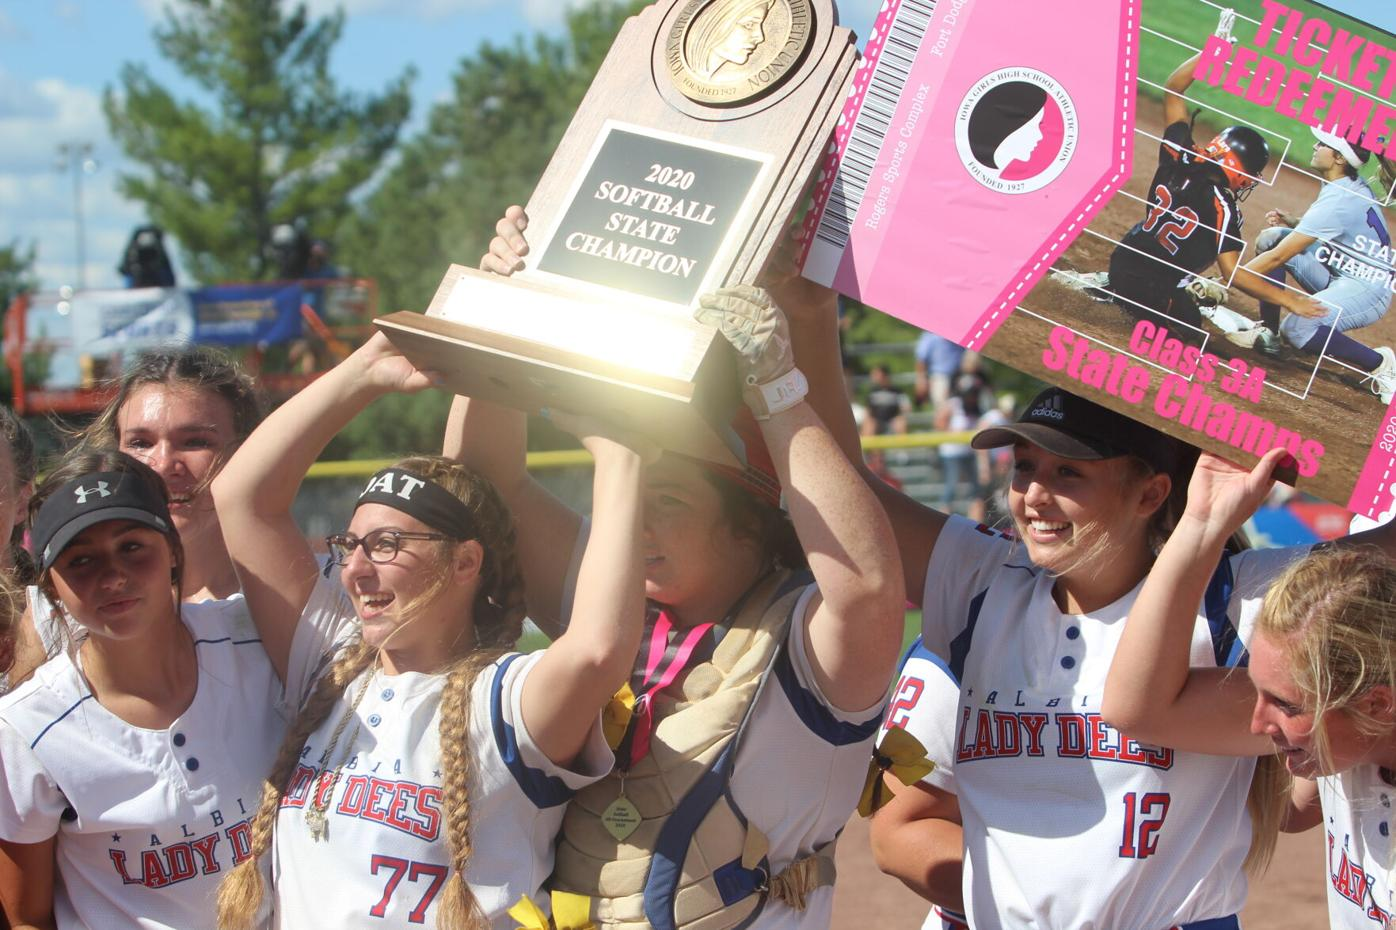 Lady Dees 'get the gleam' (2-4 column photo)